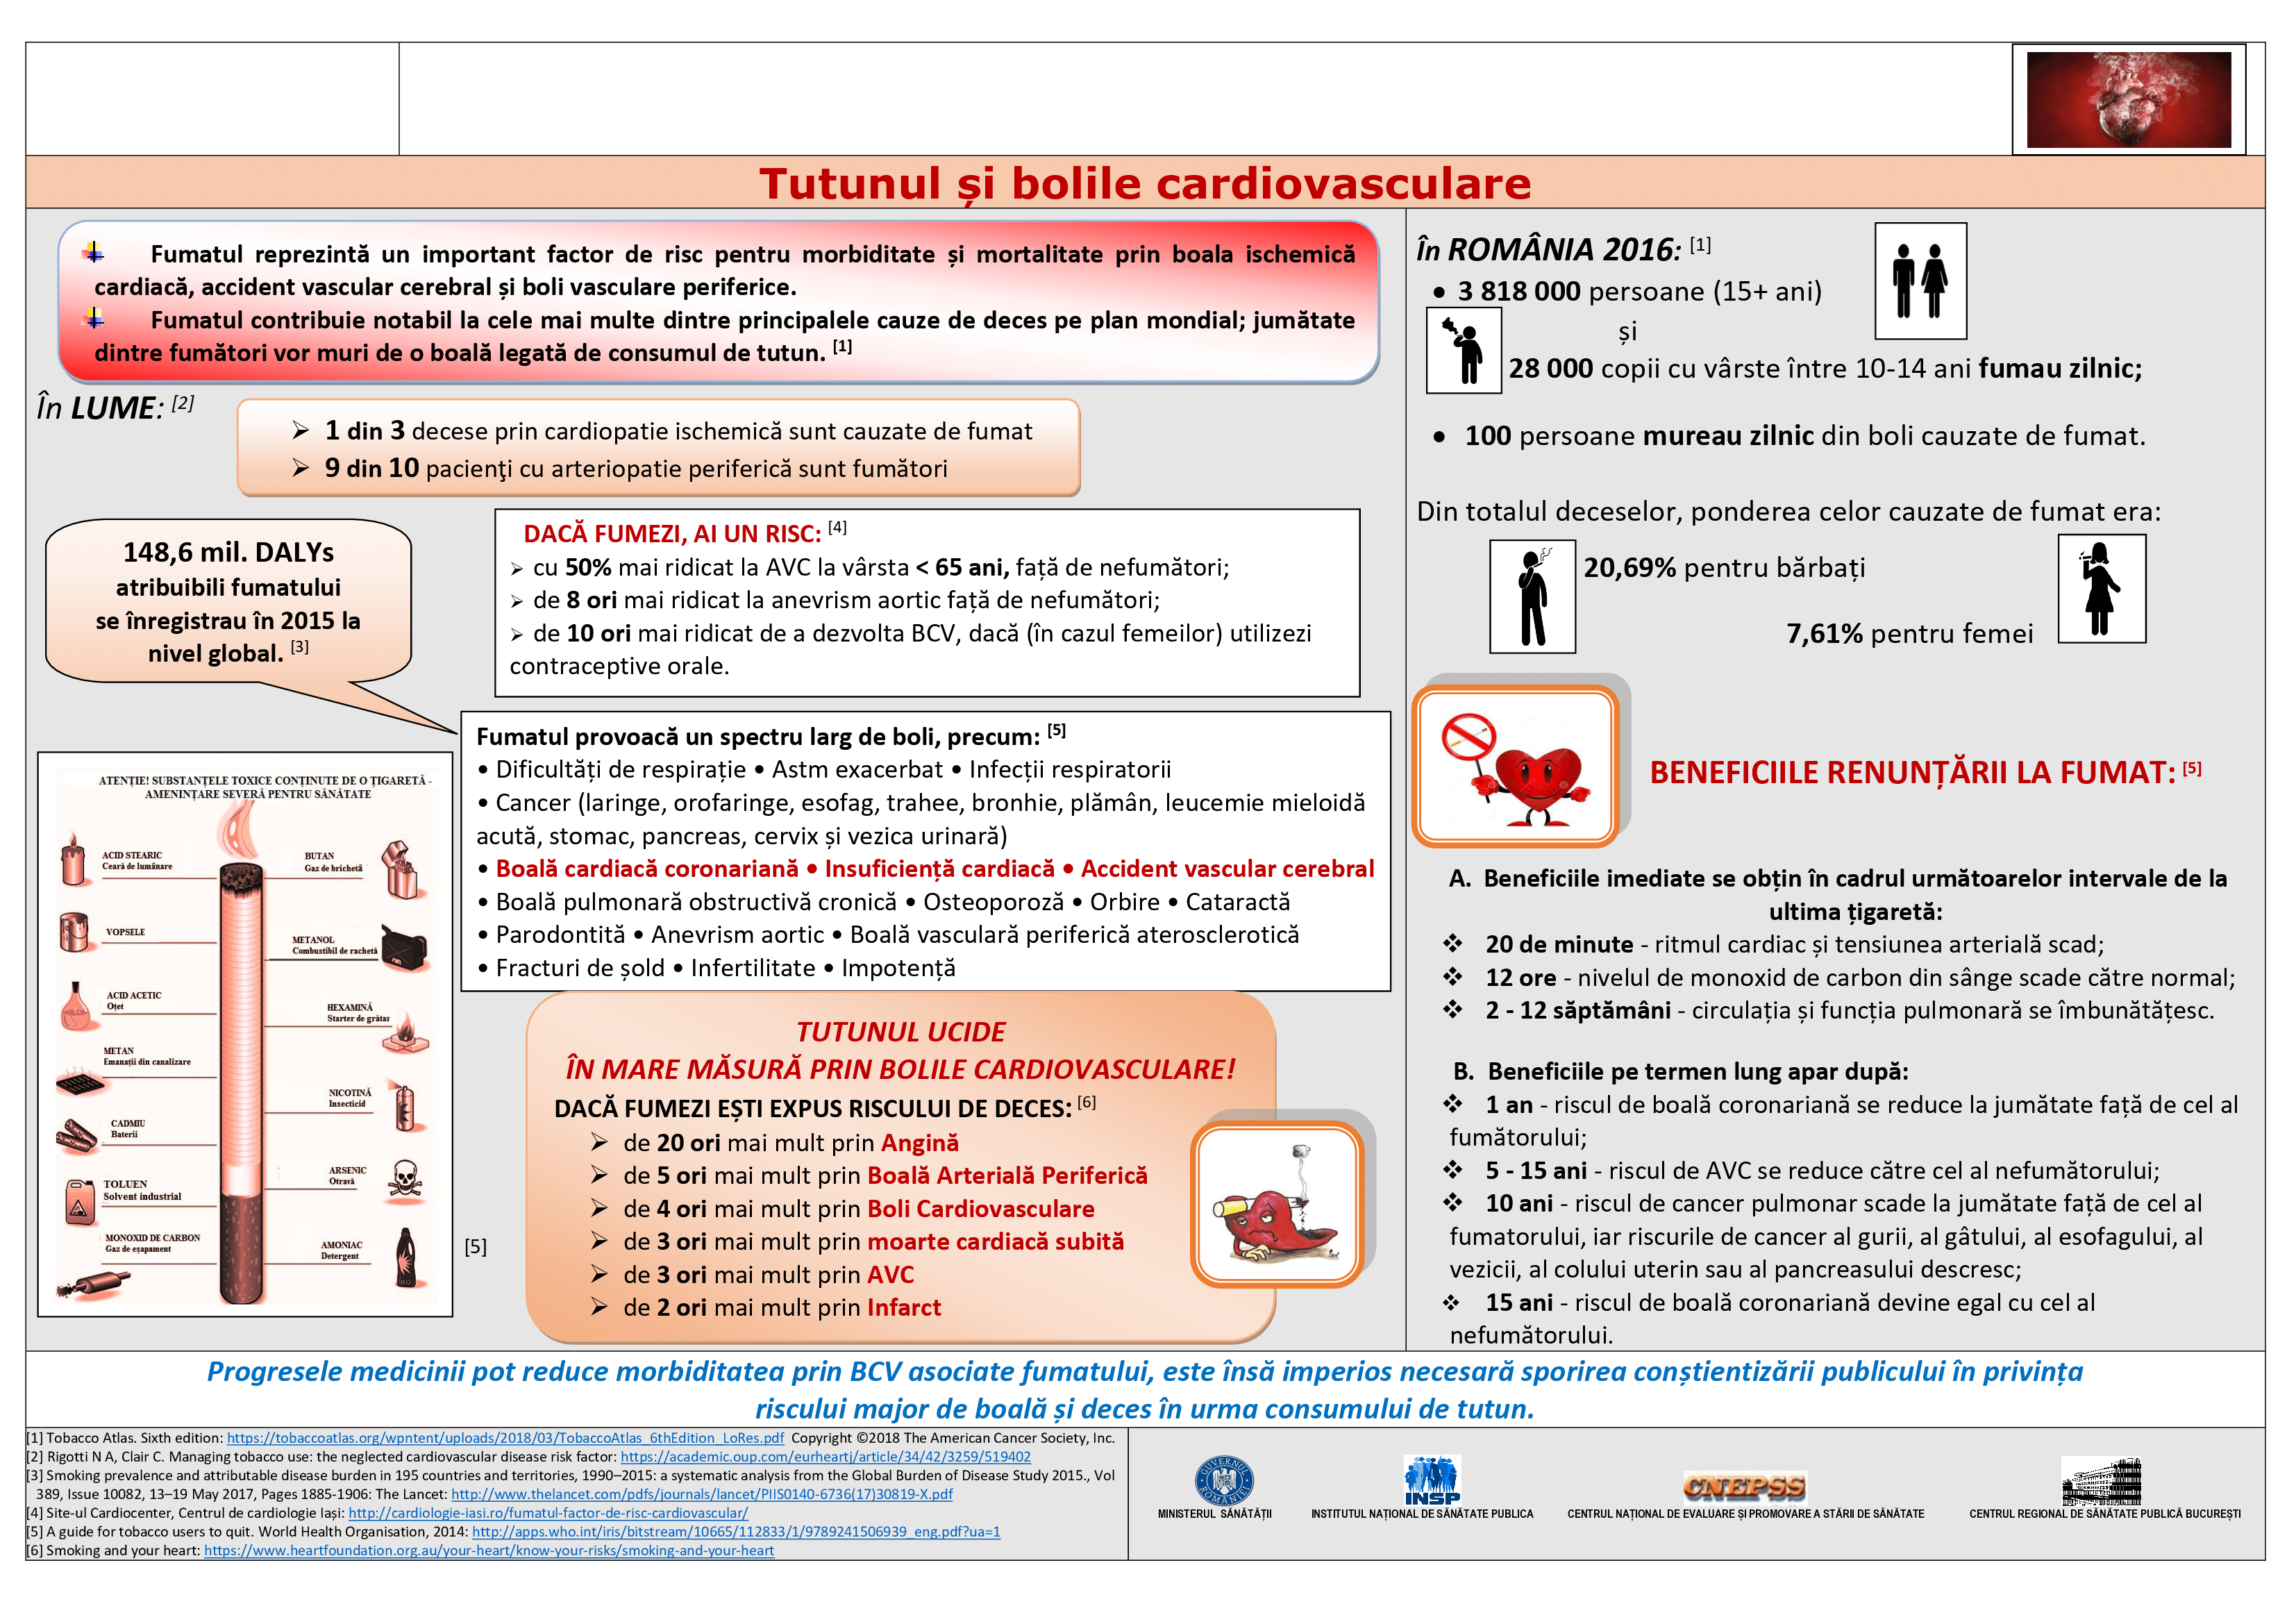 https://www.medstar2000.ro/wp-content/uploads/2019/02/Tutunul-si-bolile-cardiovasculare.png